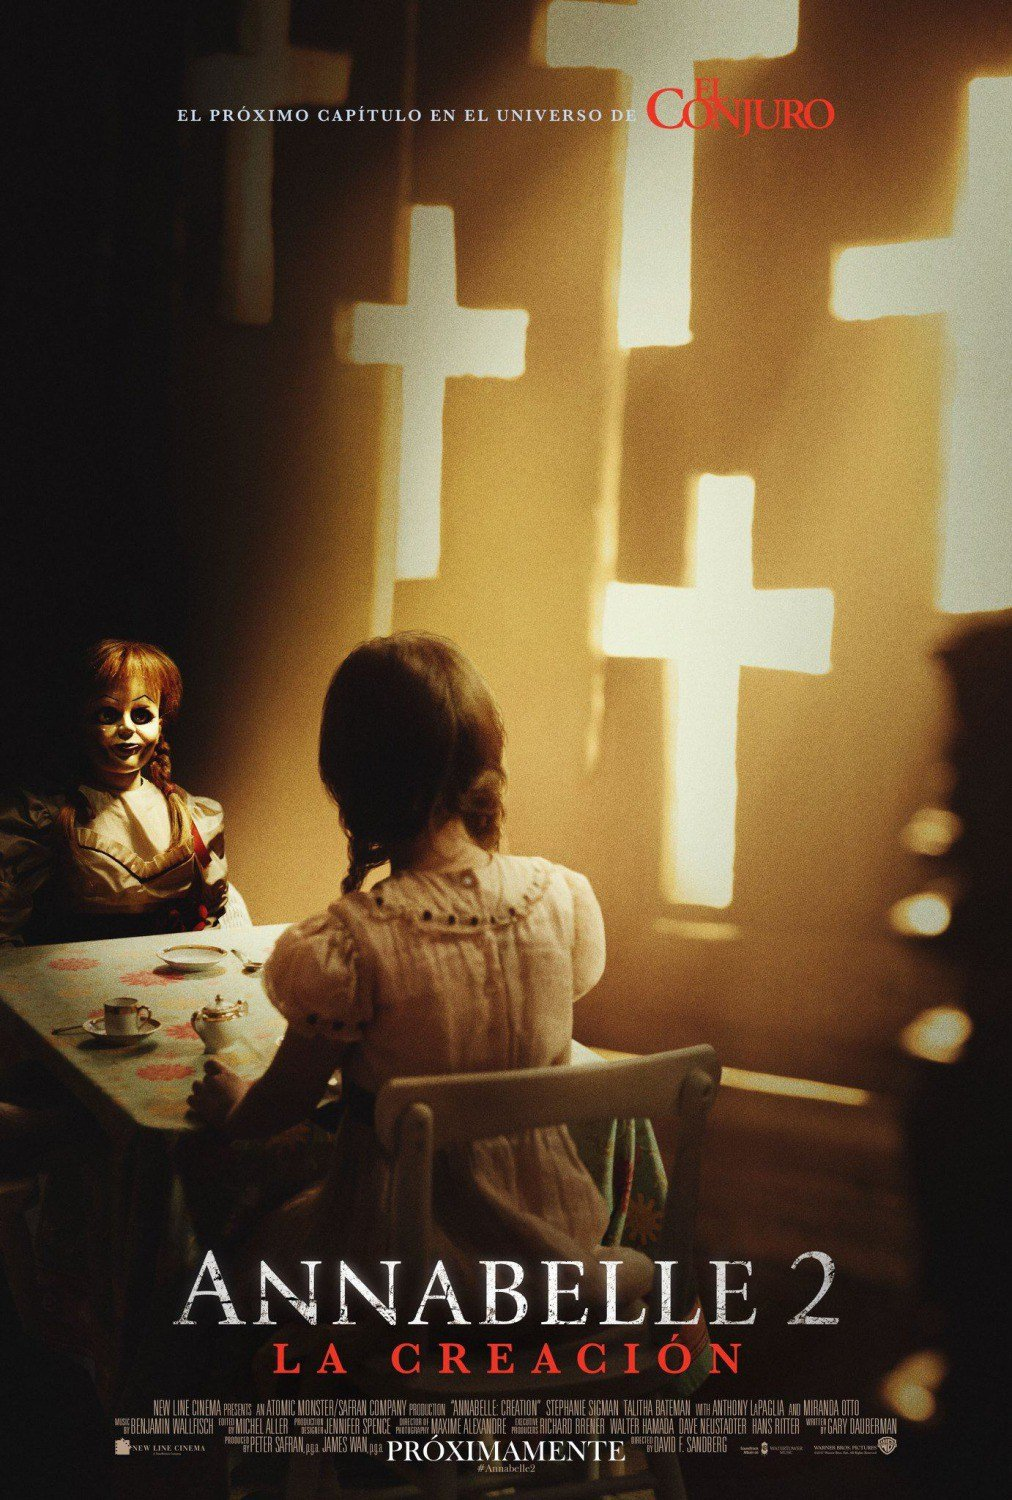 Spooky International Poster For Annabelle: Creation Looms Onto The Interwebs